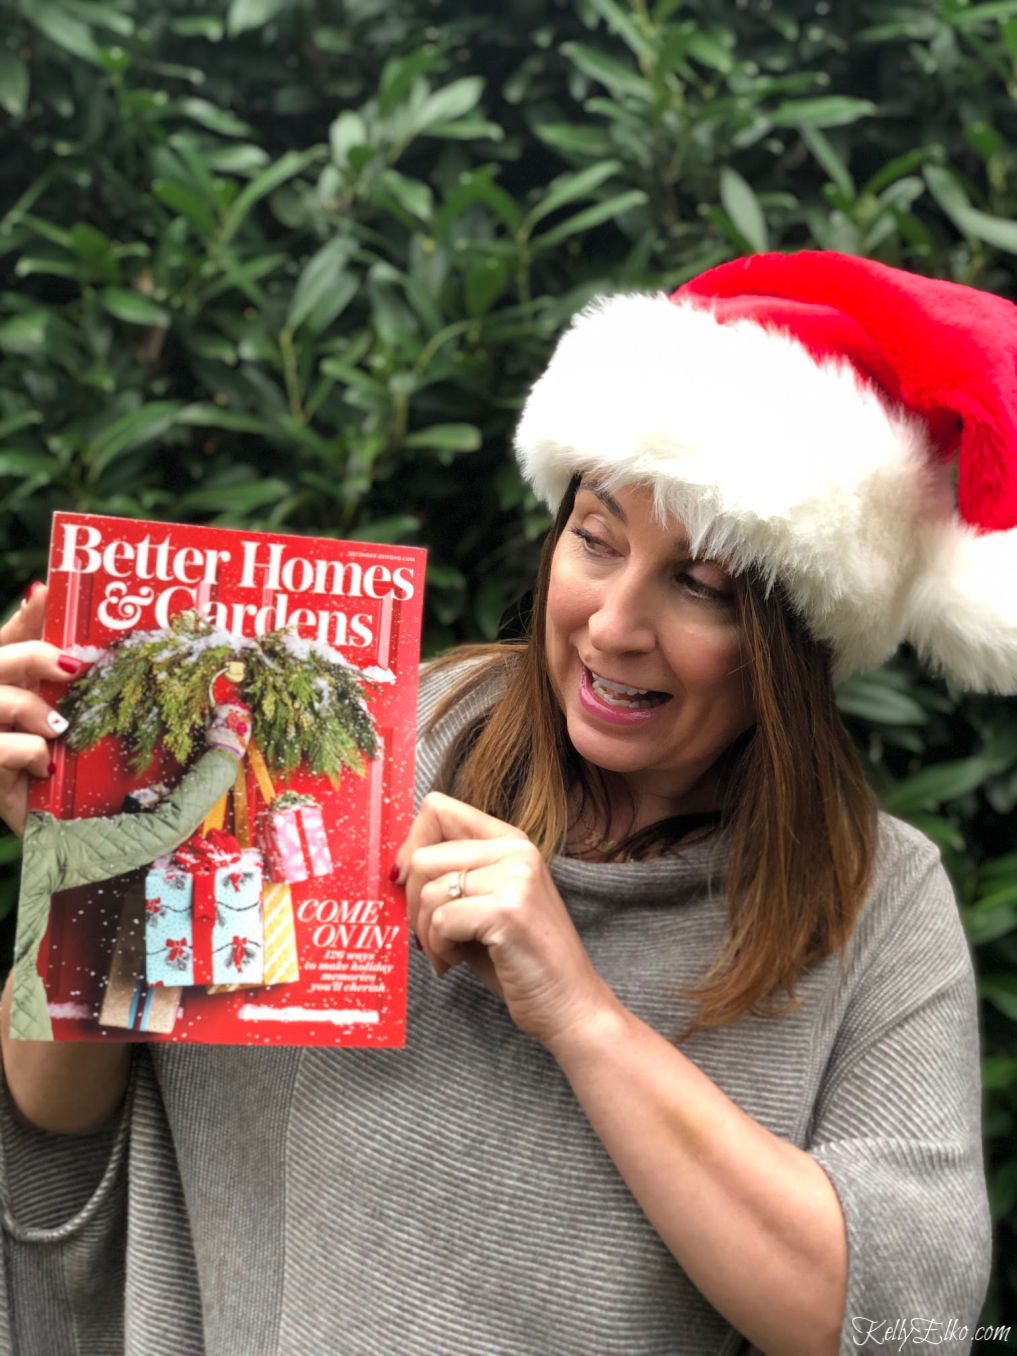 Better Homes & Gardens Kelly Elko Christmas - see the 6 page spread of Kelly's decked out home that is filled with creative Christmas decorating ideas kellyelko.com #christmas #christmasdecor #christmasdecorating #christmasdecoratingideas #bhgchristmas #kellyelko.com